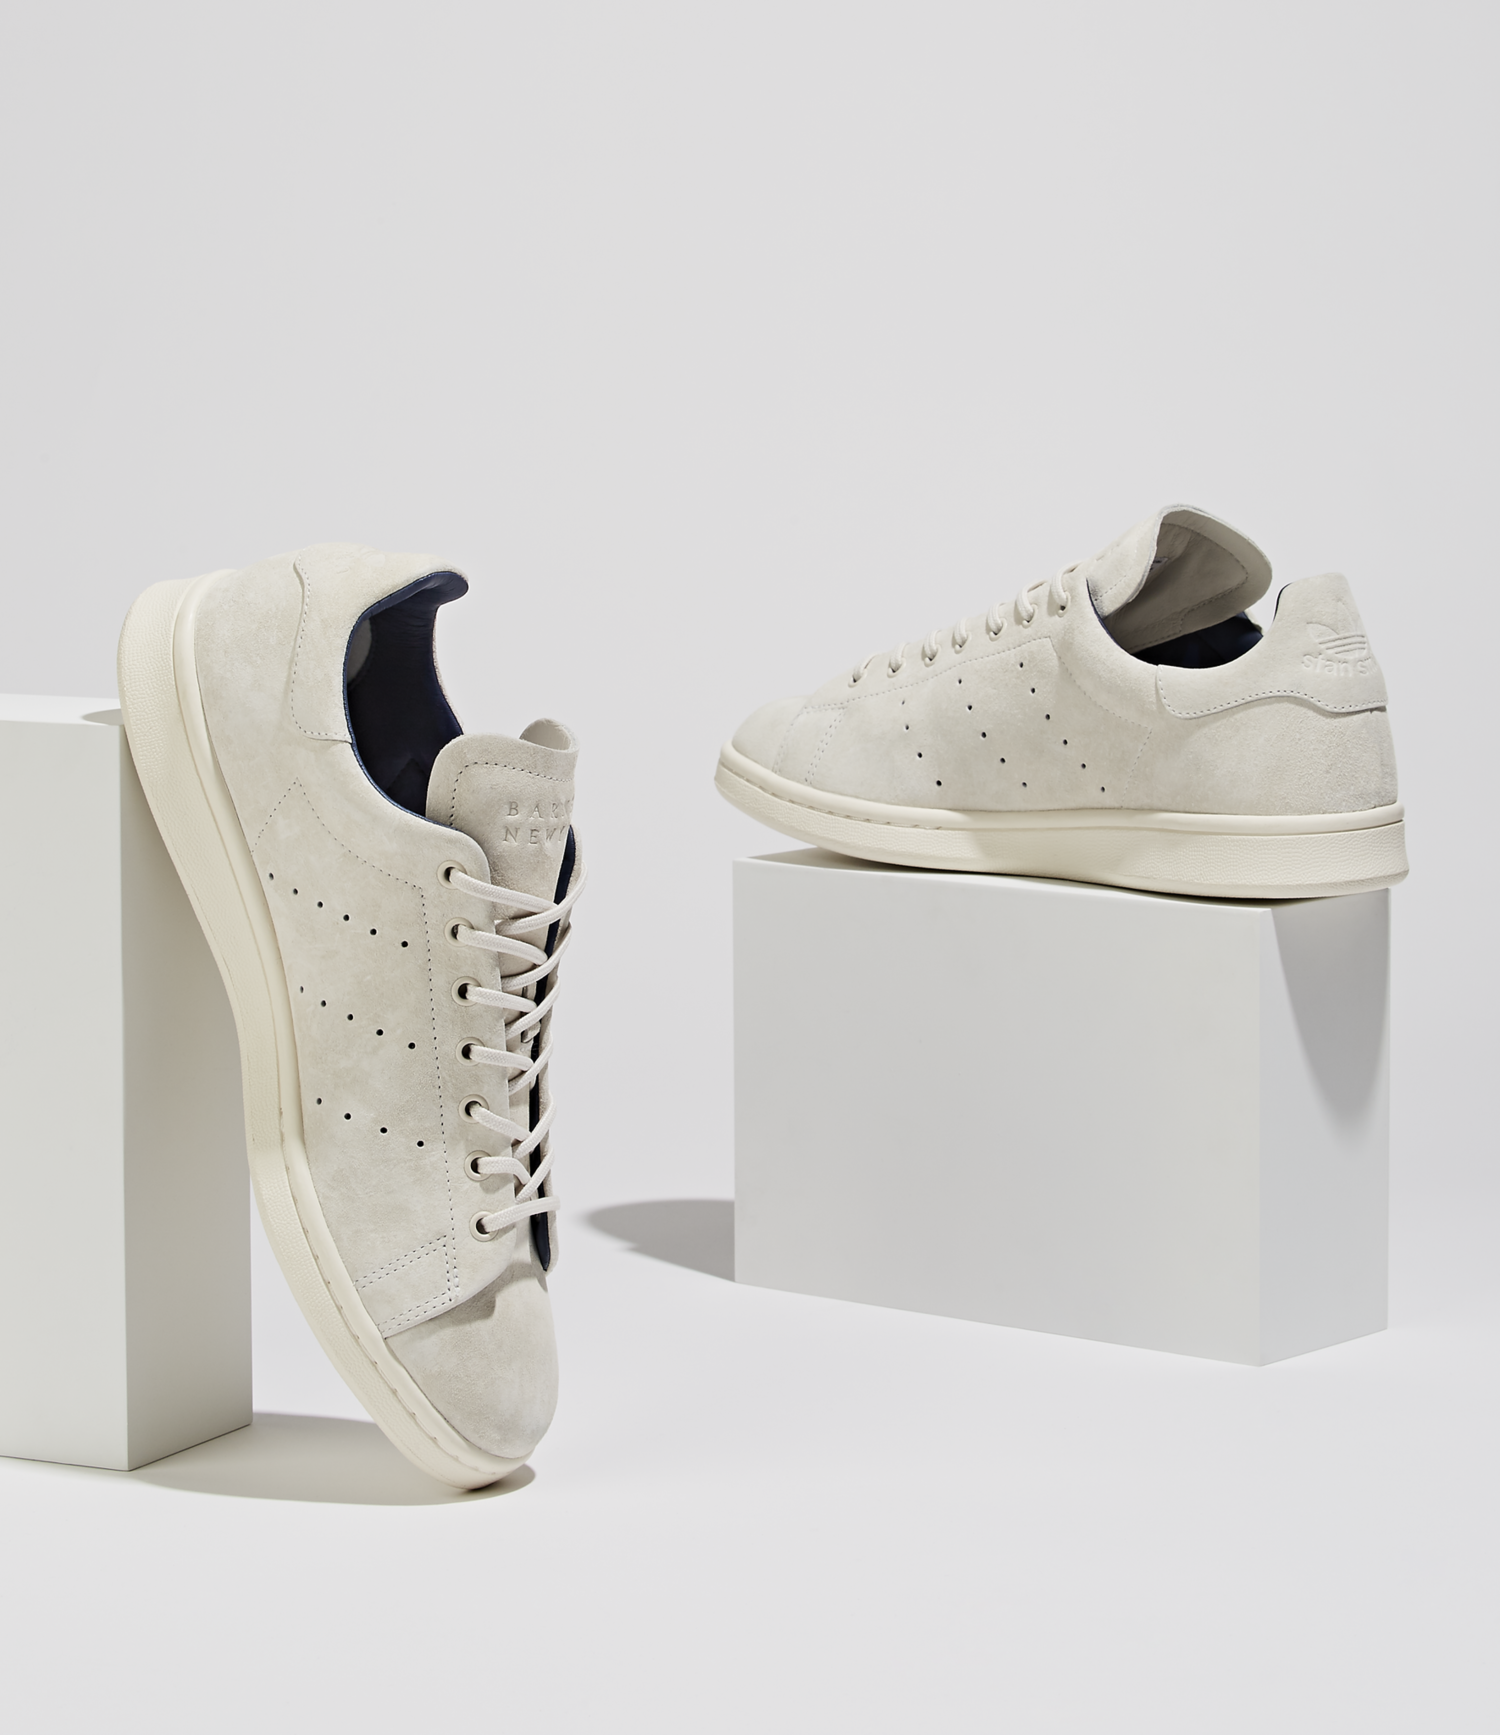 new style e9f4f 1e5cd Now Available: Barneys x adidas Stan Smith Suede